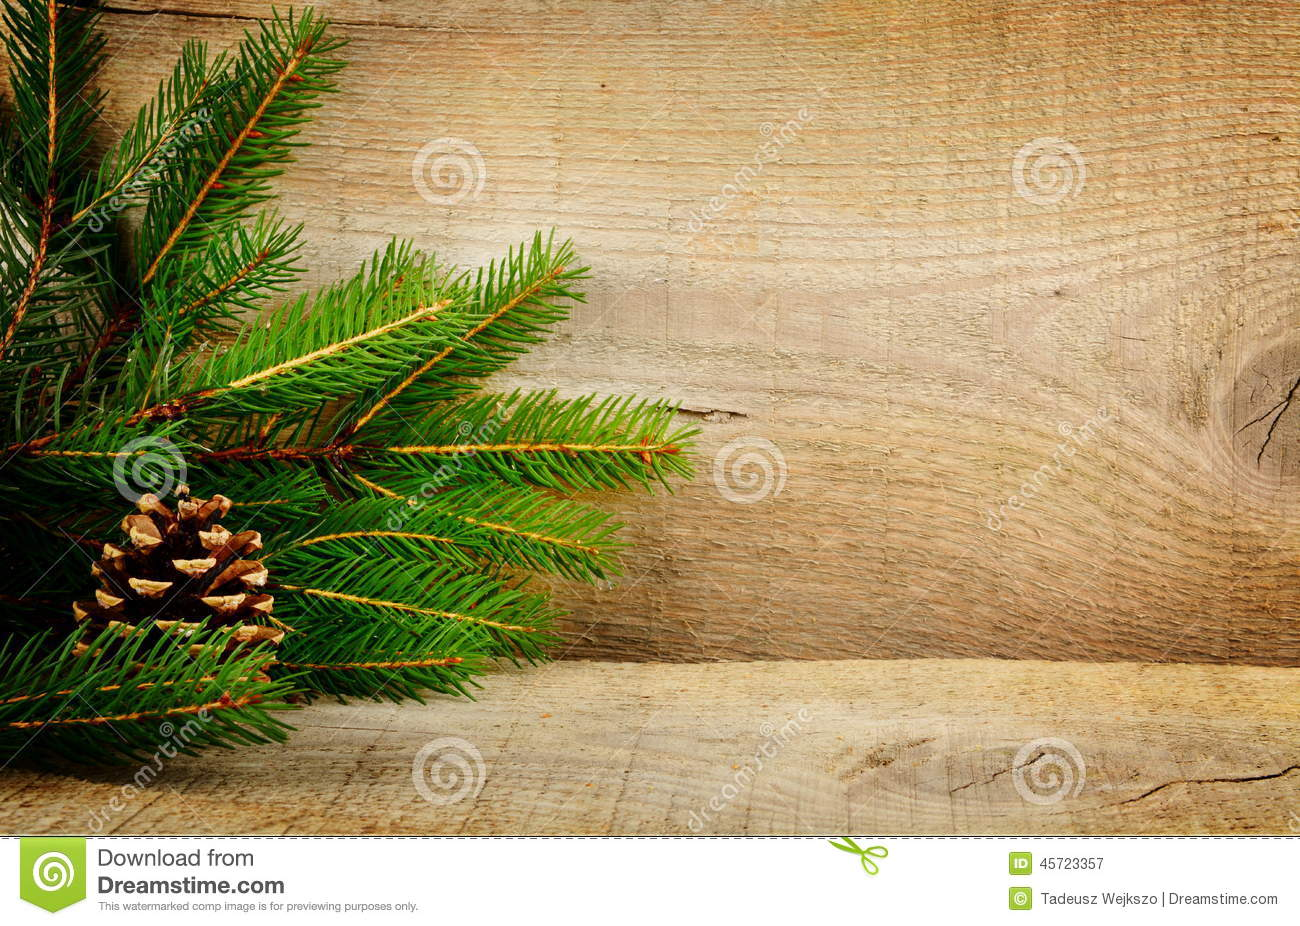 wooden christmas backgrounds fir spruce cone stock image - image of